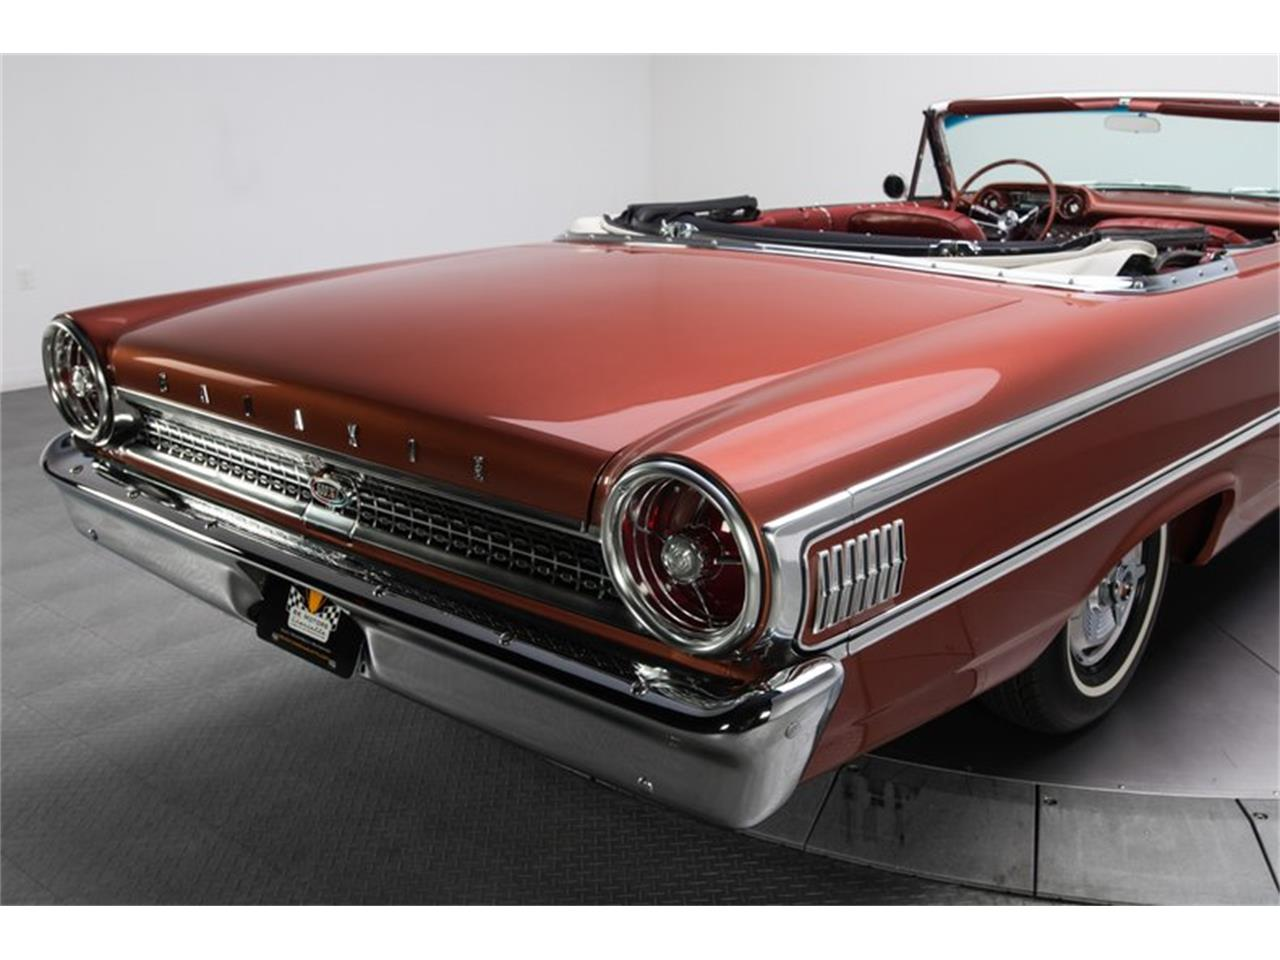 Large Picture of Classic '63 Ford Galaxie 500 XL located in Charlotte North Carolina - $75,900.00 Offered by RK Motors Charlotte - EXEW